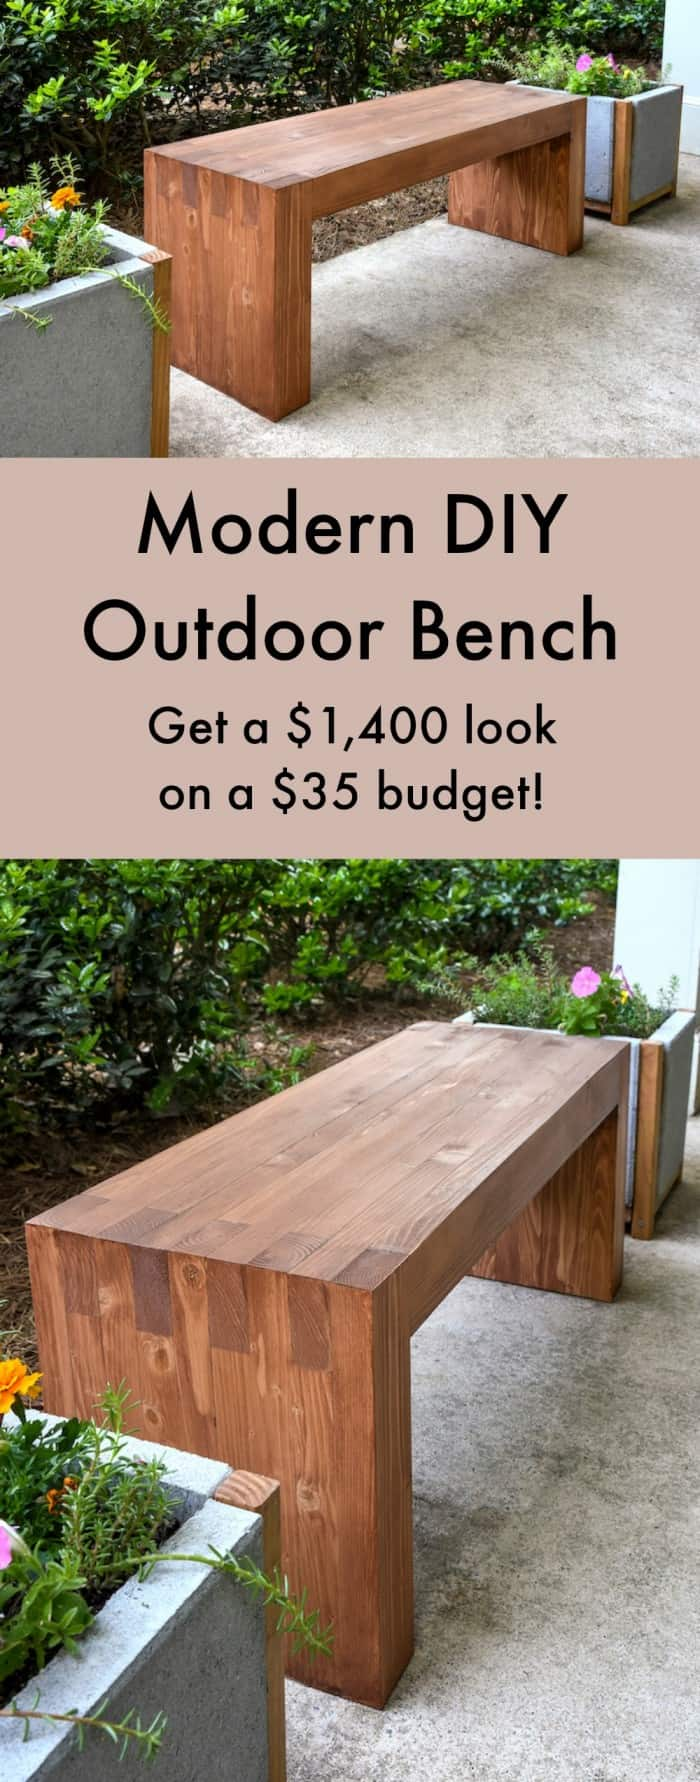 williams sonoma inspired diy outdoor bench diycandy com